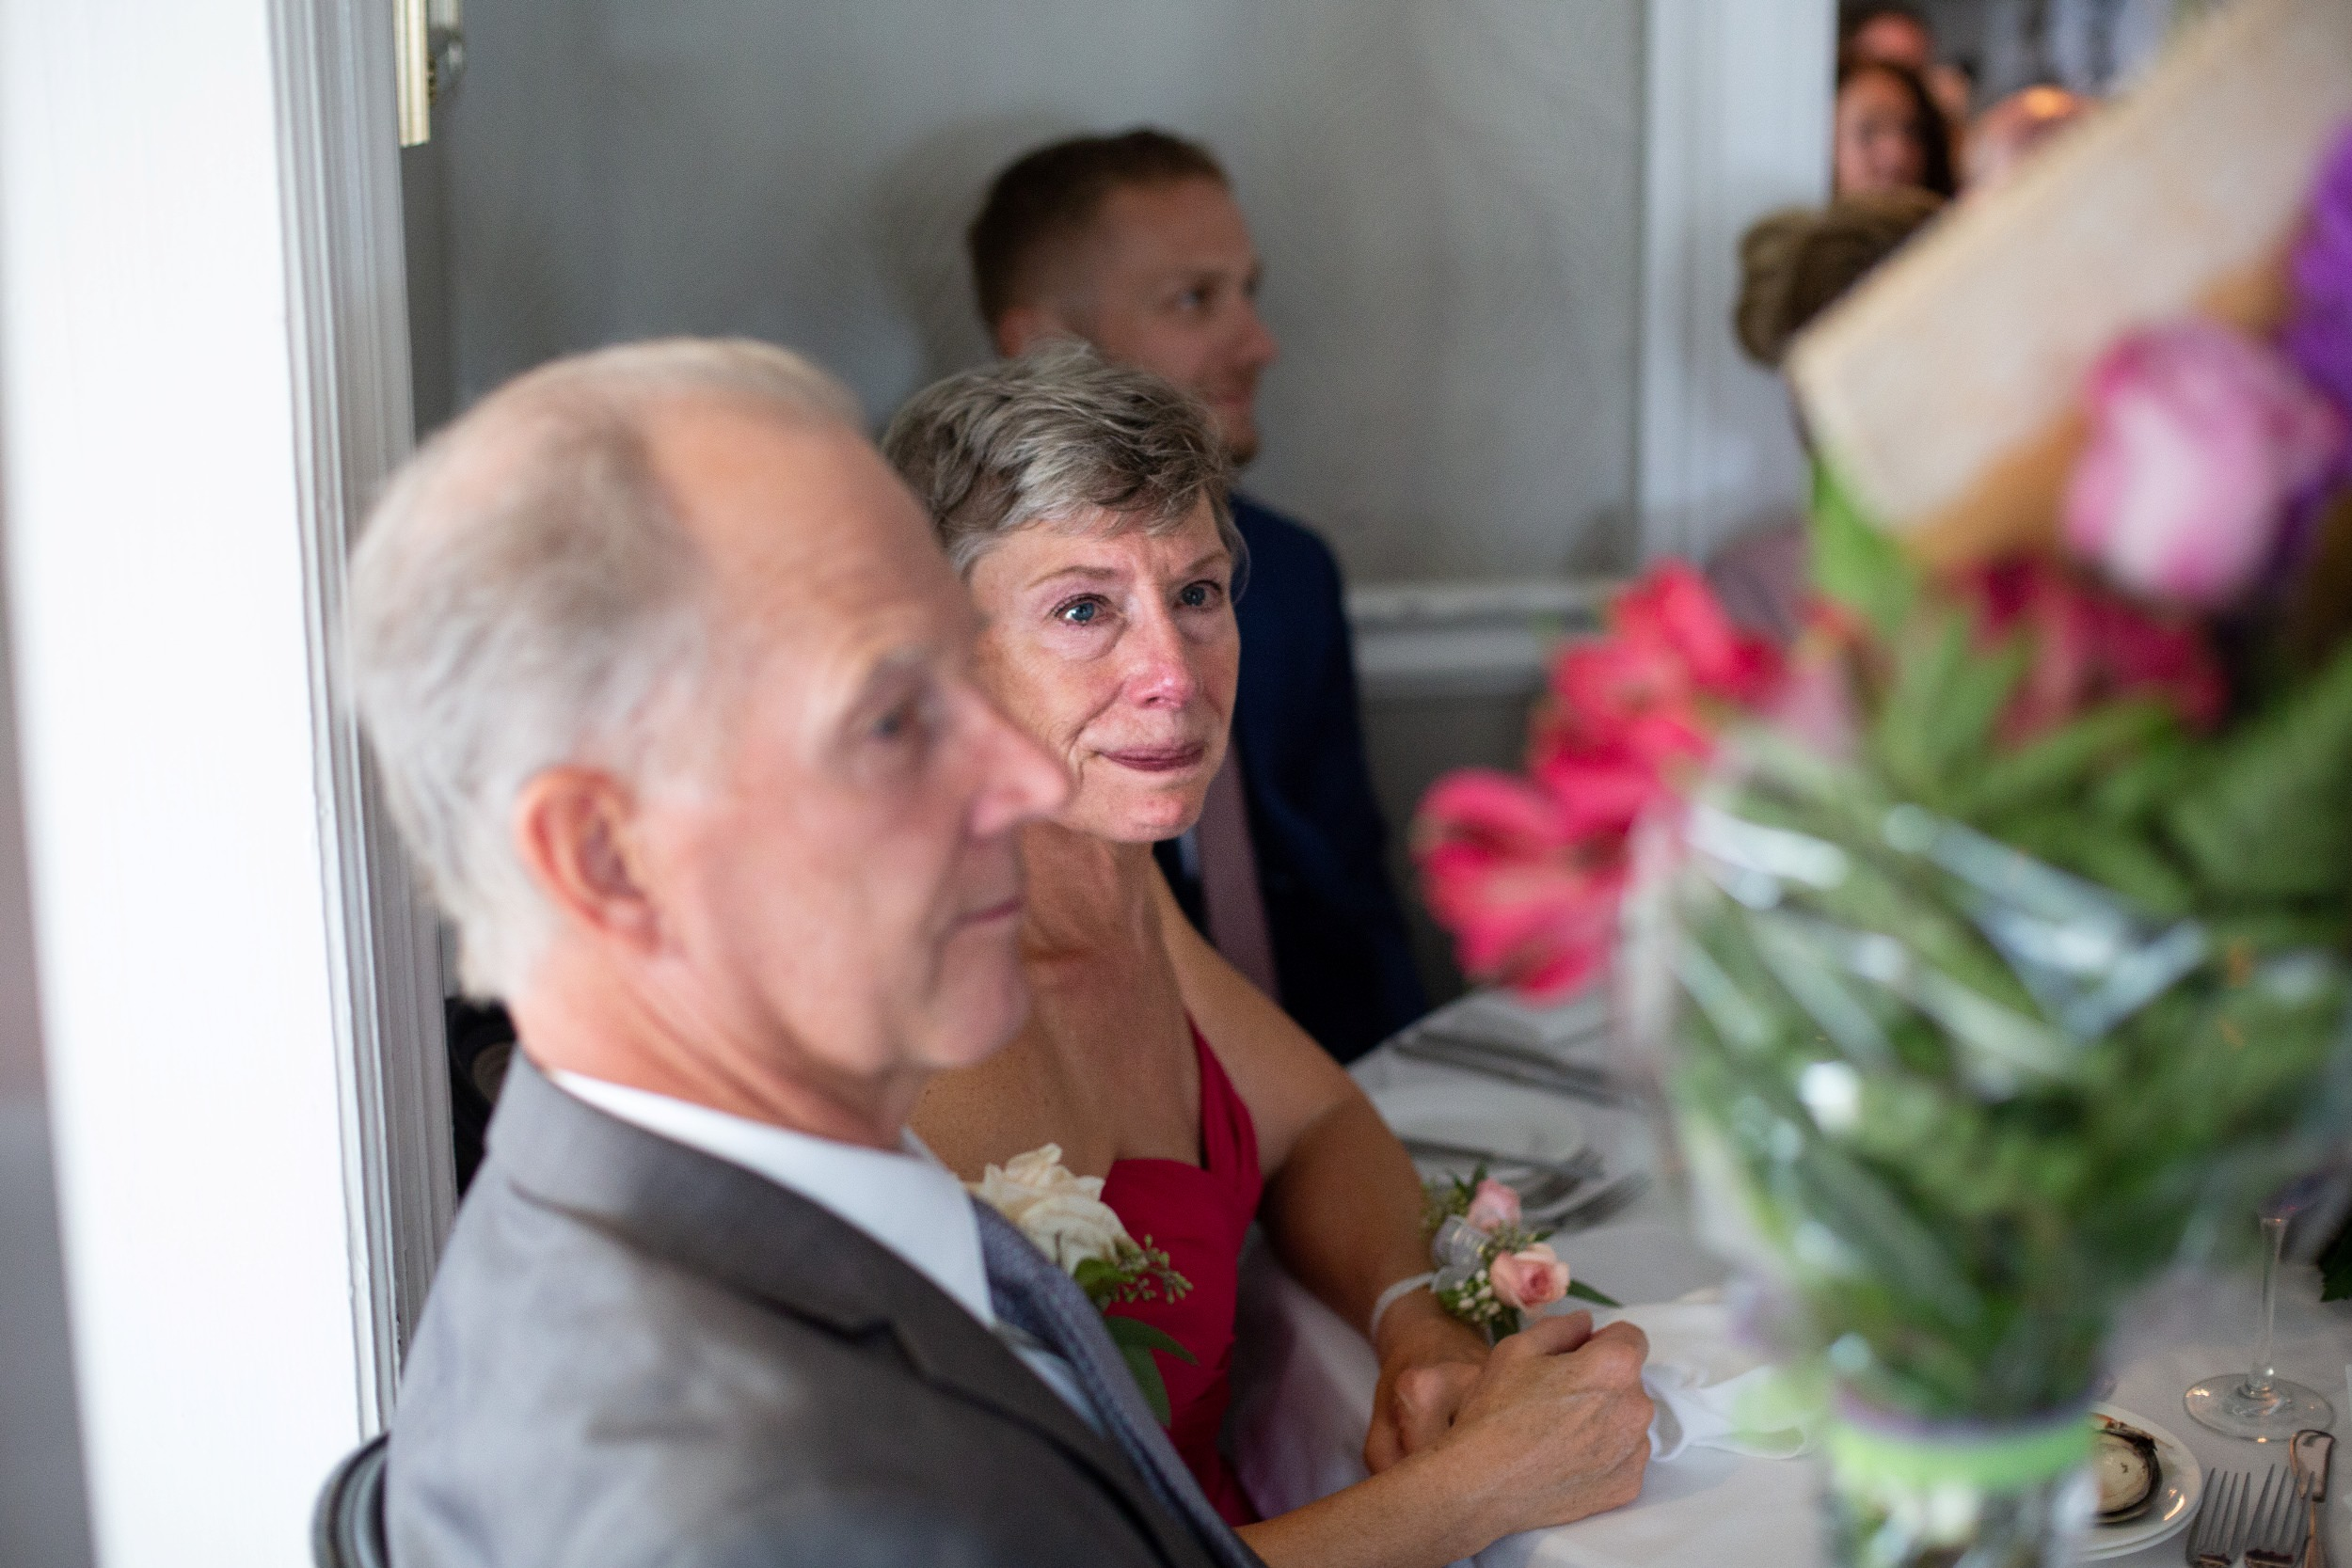 parents tears during wedding.jpg